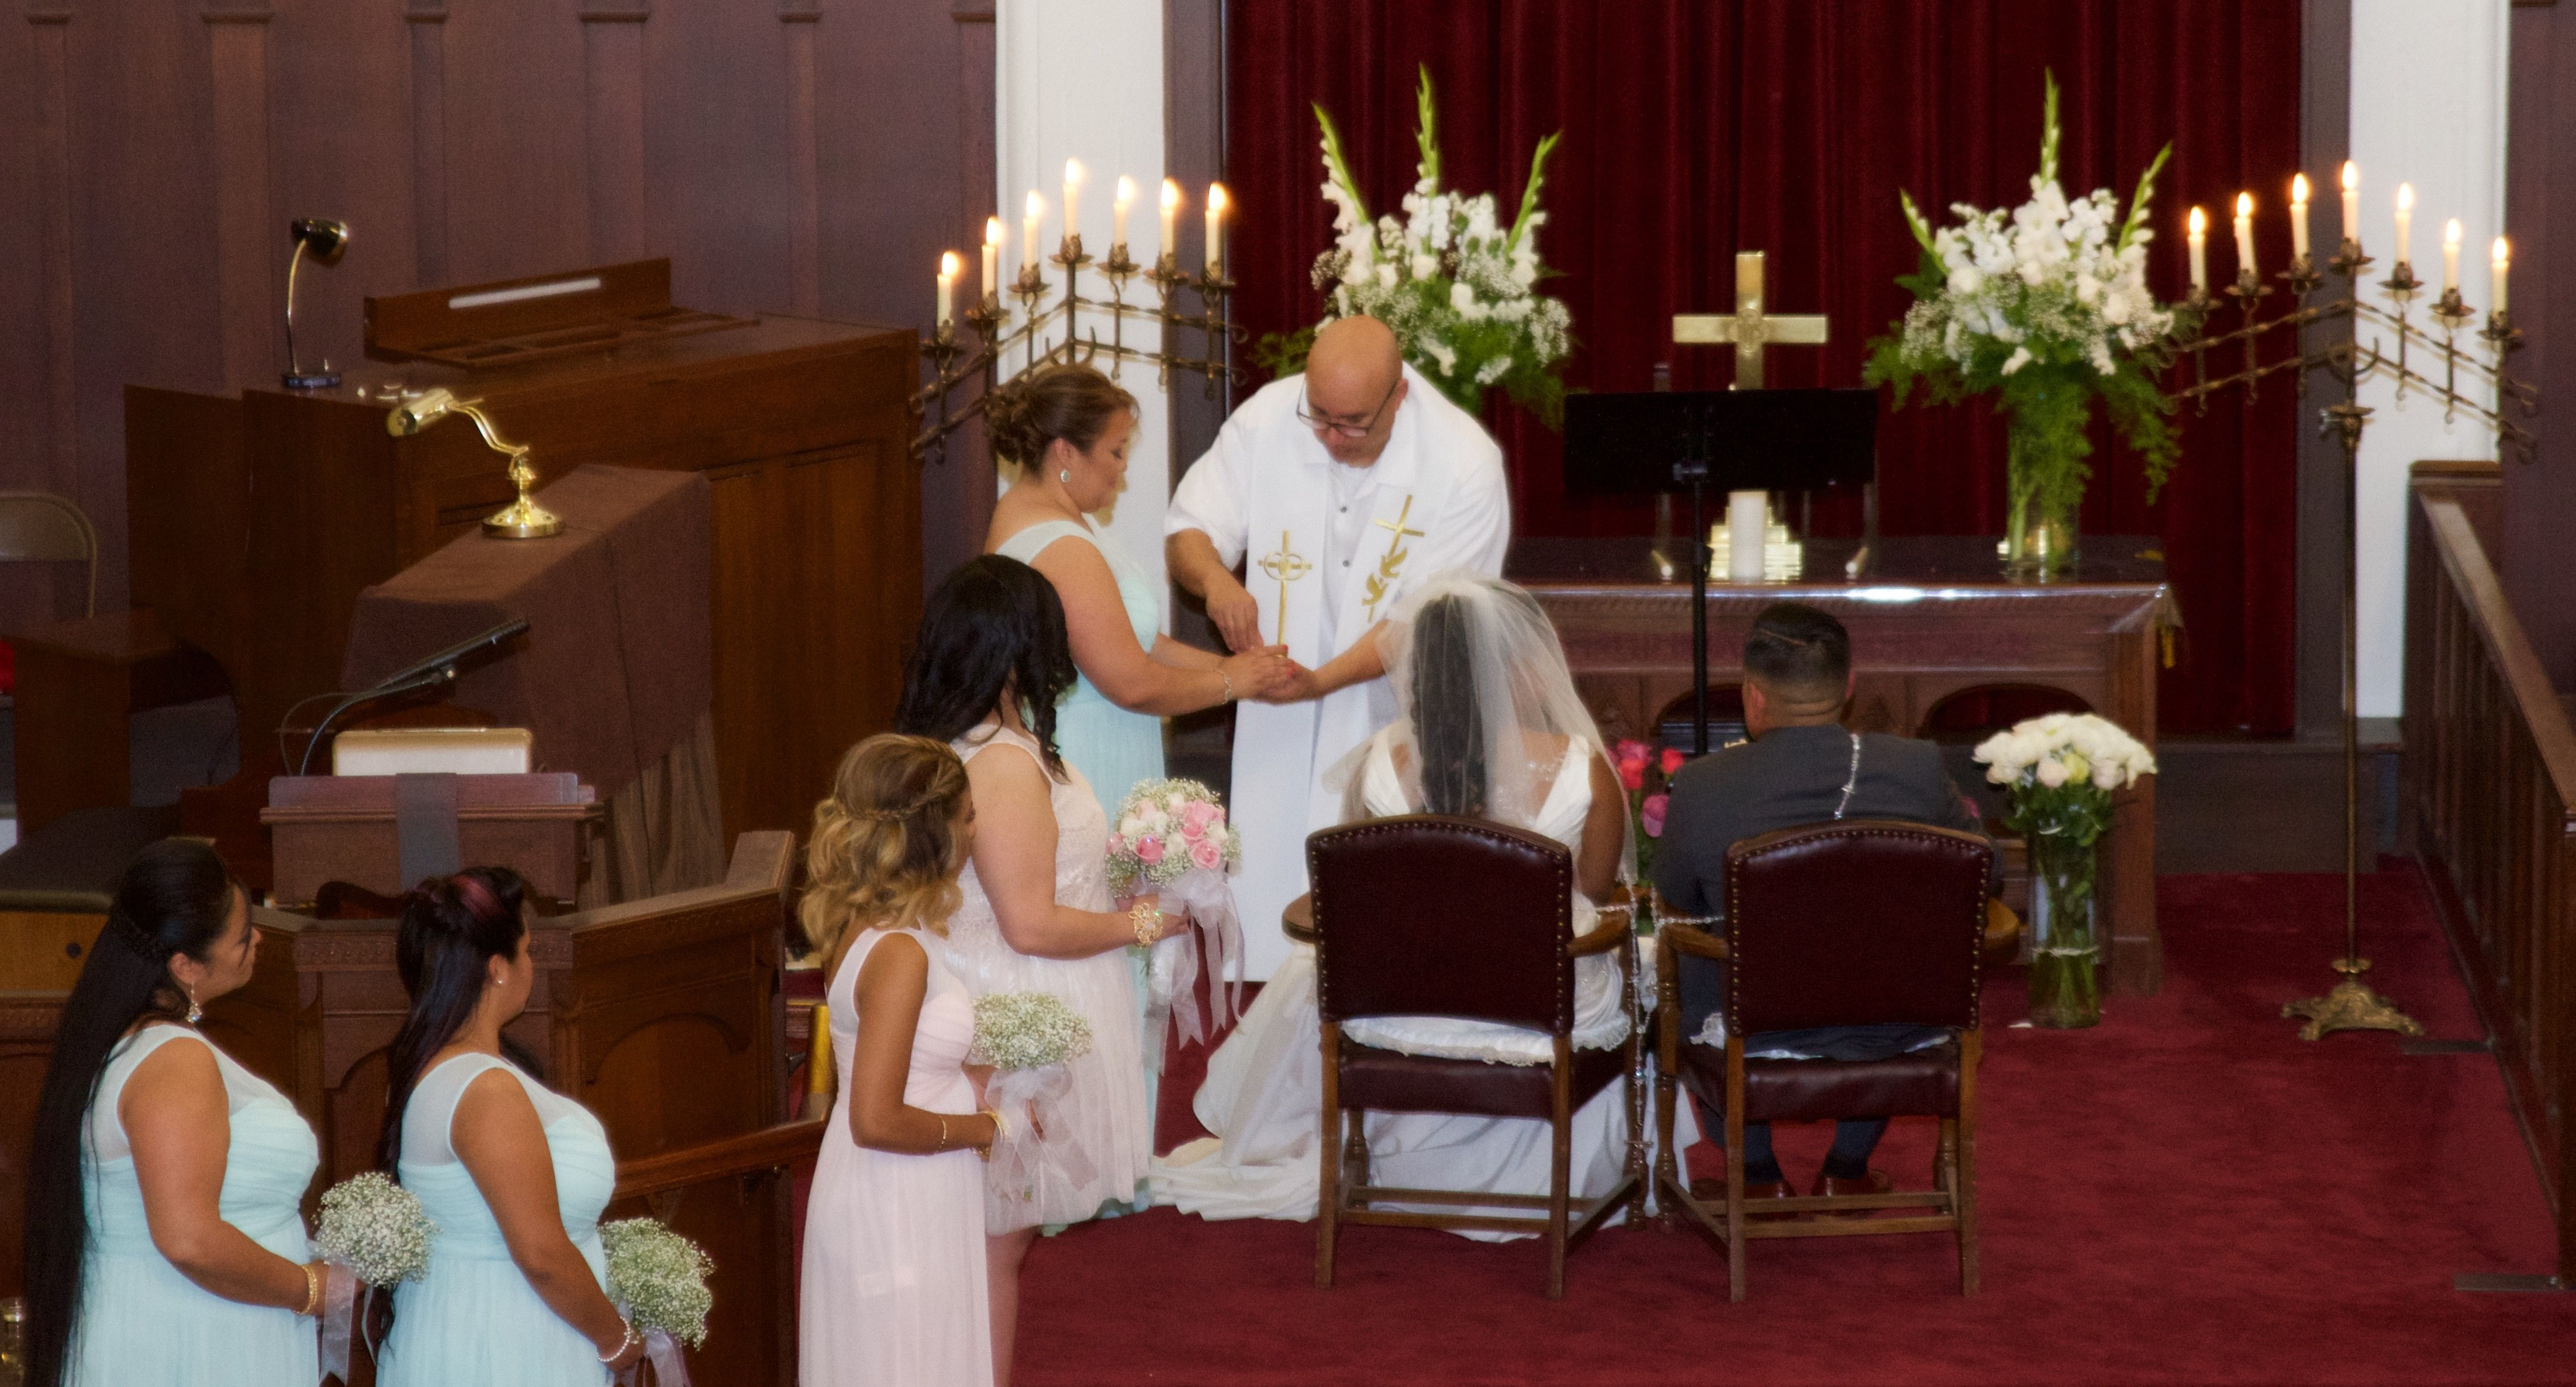 Best Bilingual officiant at John316weddings for your